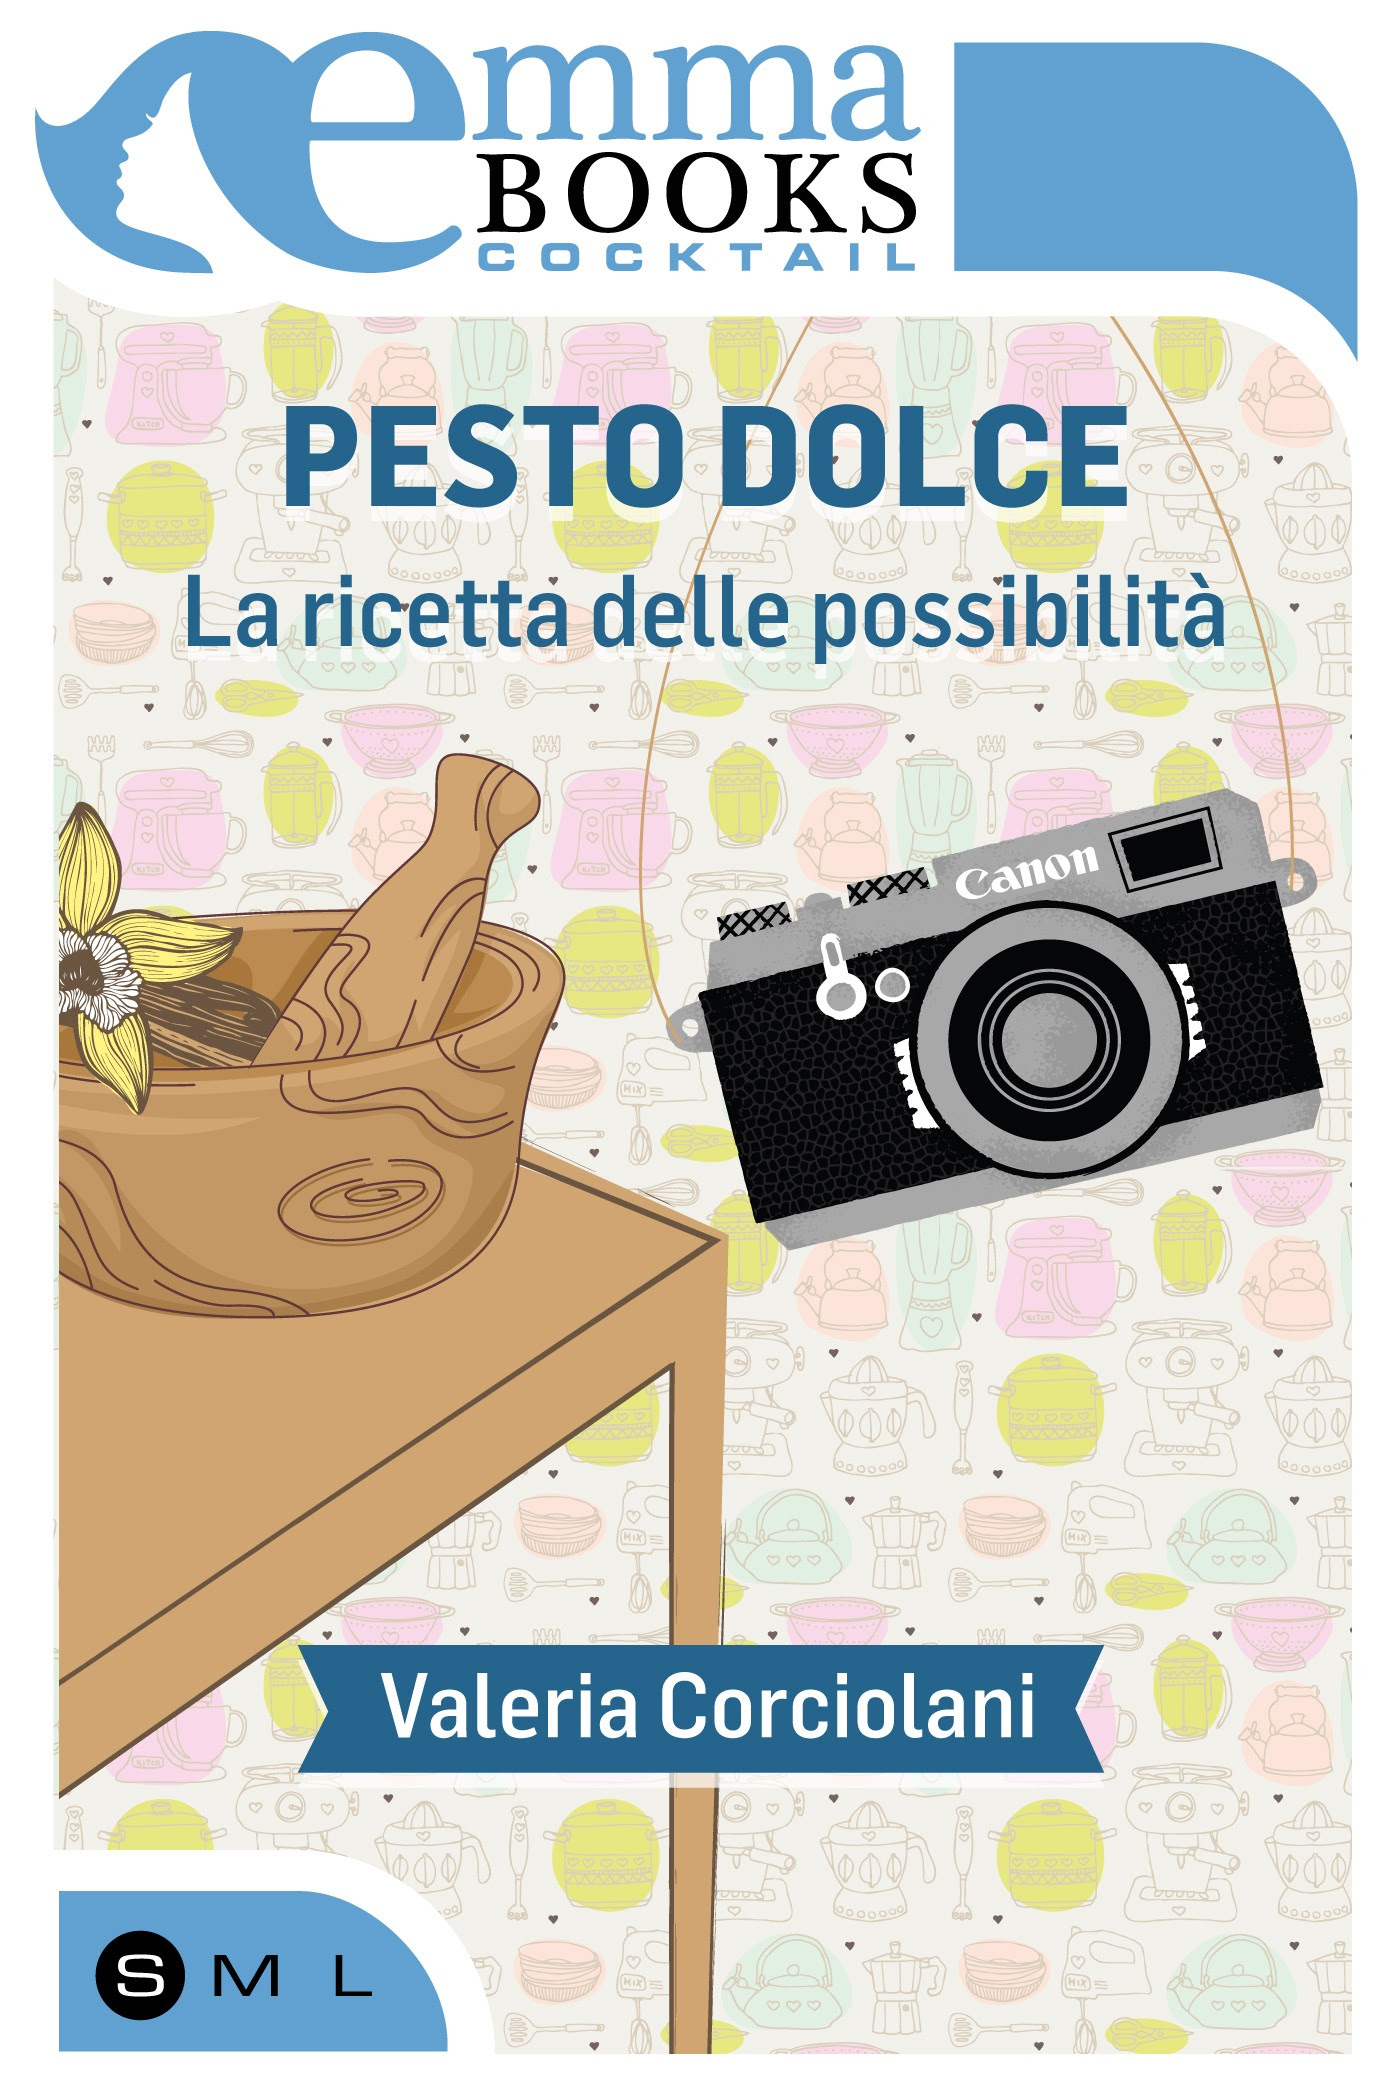 http://alessandria.bookrepublic.it/api/books/9788868930417/cover